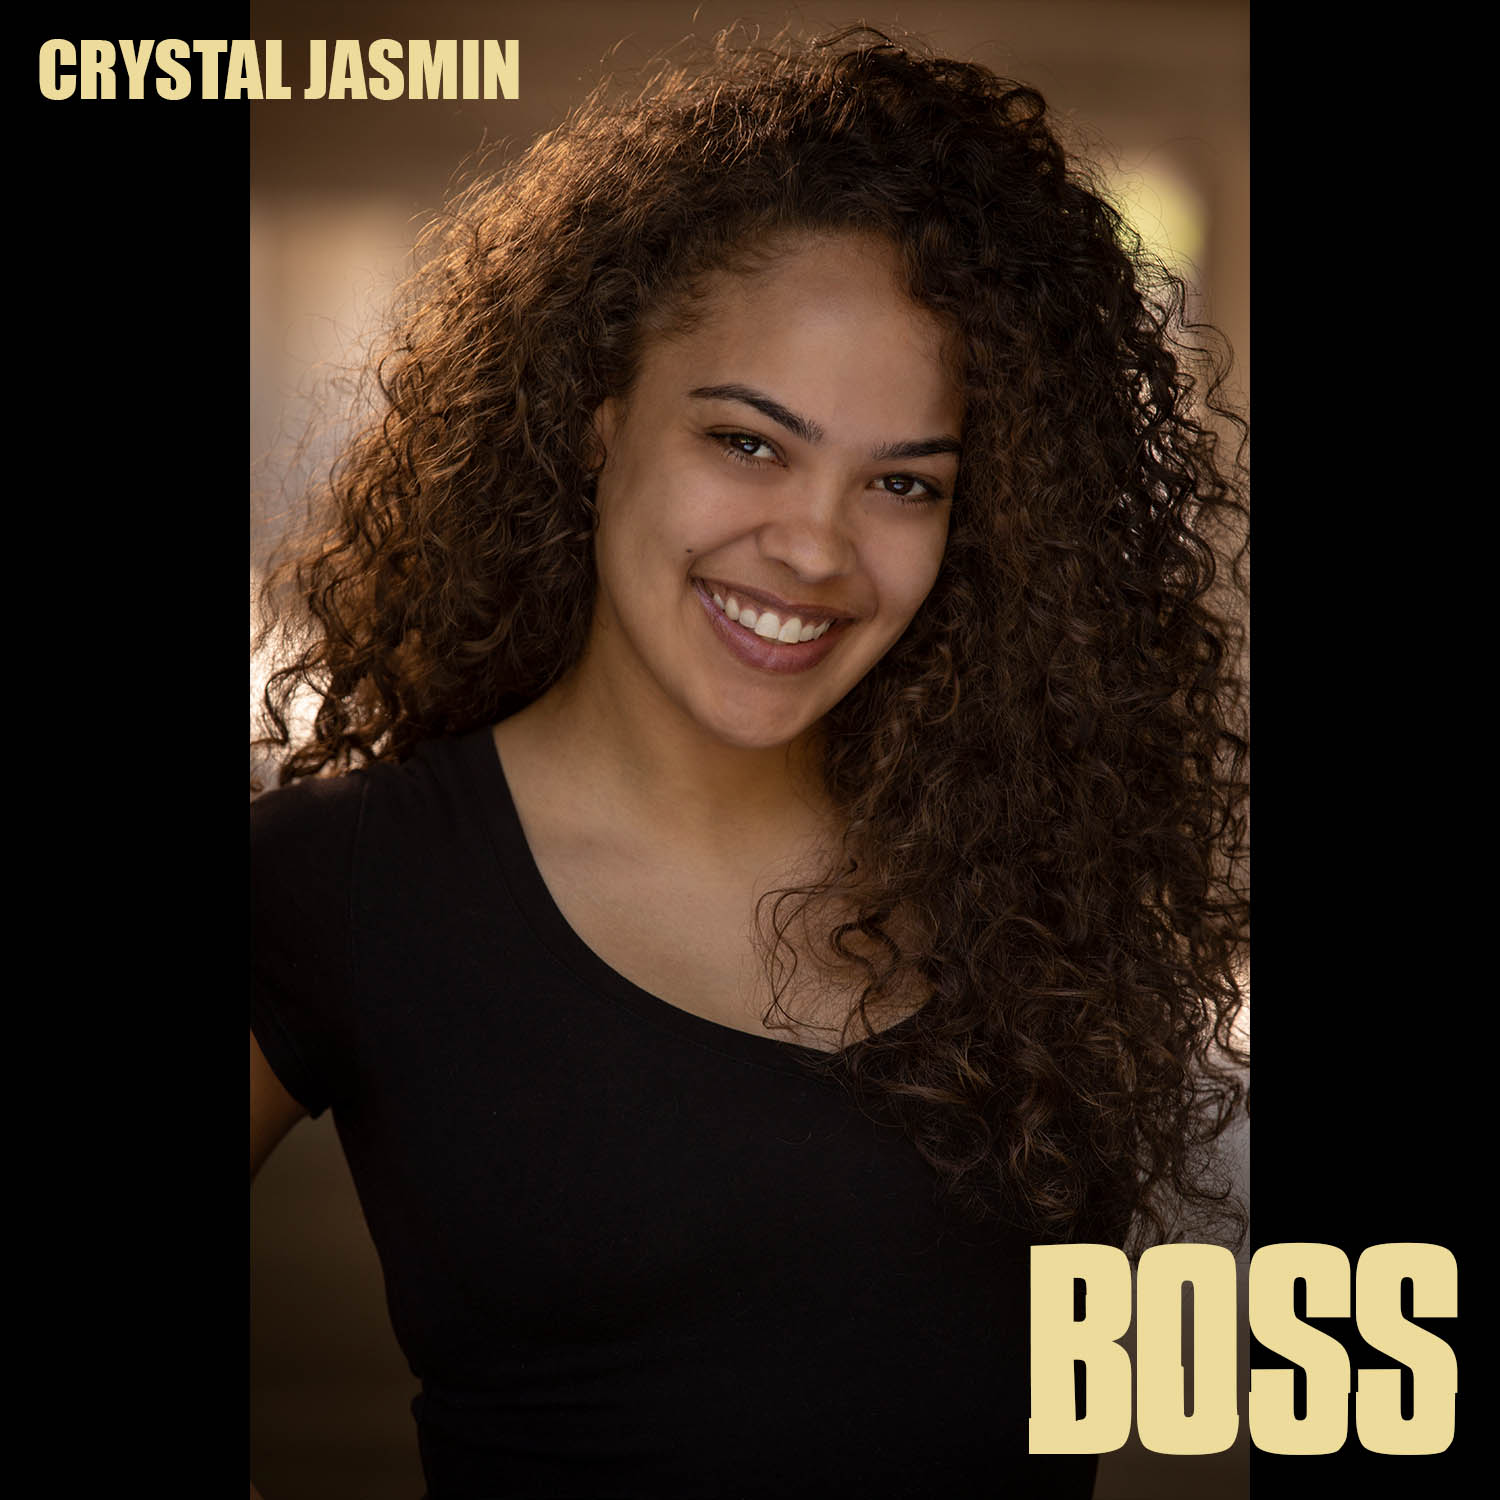 Crystal Jasmin stars as KALI - Crystal is a Bay Area/Oakland born and raised talent with a BS in Criminal Justice and focus on Law Enforcement. She is an accomplished actress ever training in her craft with past credits as a leading lady of music videos, plus print modeling for hair, cosmetic, and clothing lines. A recent Atlanta transplant, she waste no time hitting the ground running for auditions and opportunities in the local film industry. An accomplished cheerleader with a natural cheery girl vibe, Crystal is also a markswoman with martial arts training and aspirations to be seen in roles as more than just the girl next door. Her part in BOSS as Kali a break out opportunity to showcase her range as a tough but sexy enforcer.@crystaljasminactor on ig